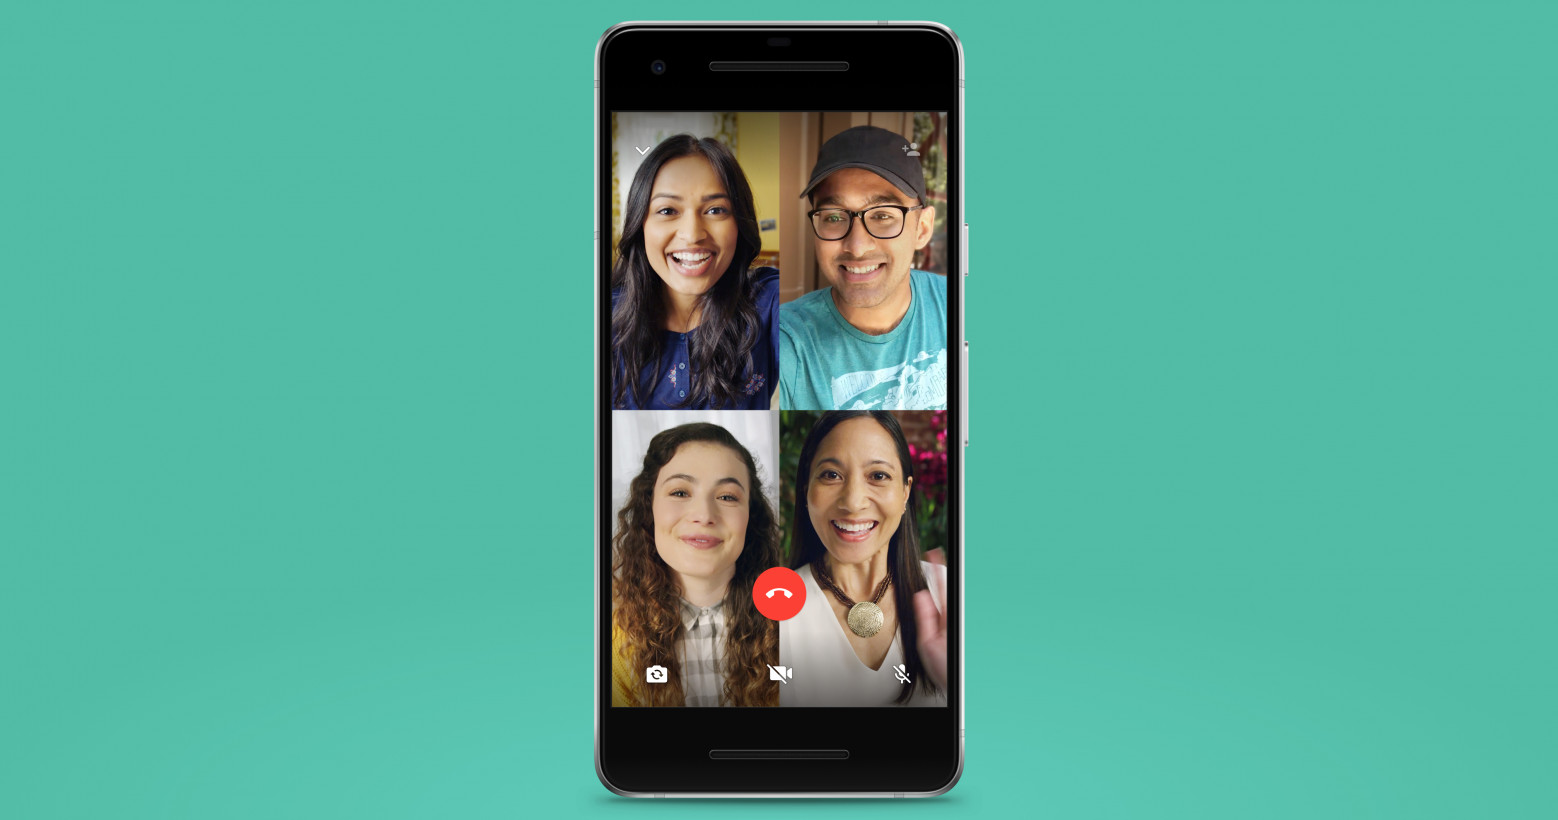 whatsapp video call best video chat apps for android